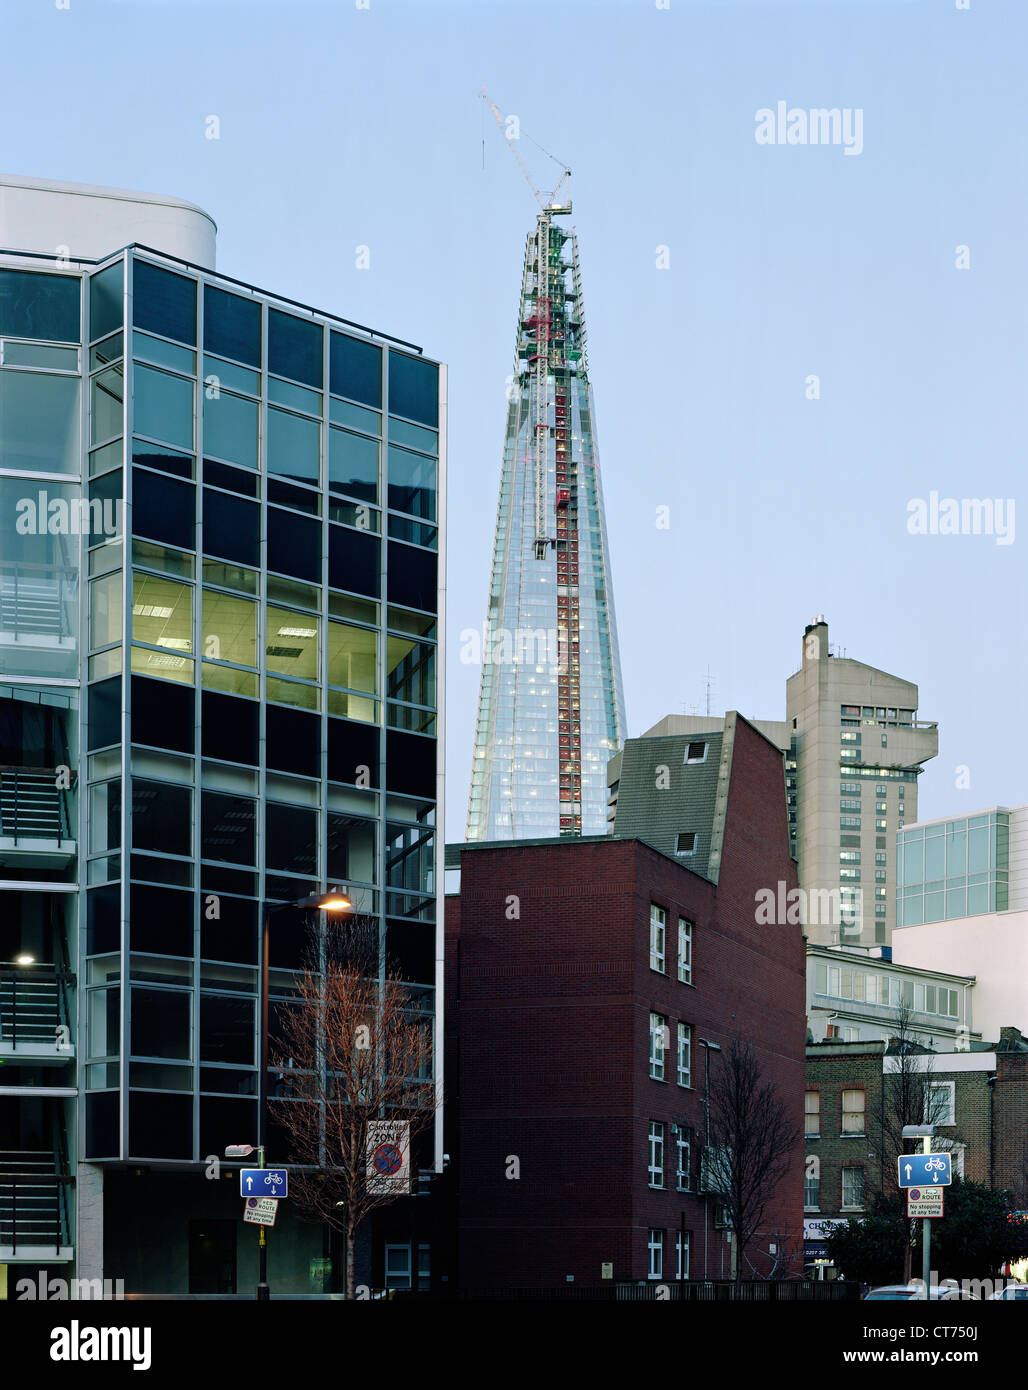 Shard, London, United Kingdom. Architect: Renzo Piano Building Workshop, 2012. Winter dusk. View from Great Dover Stock Photo